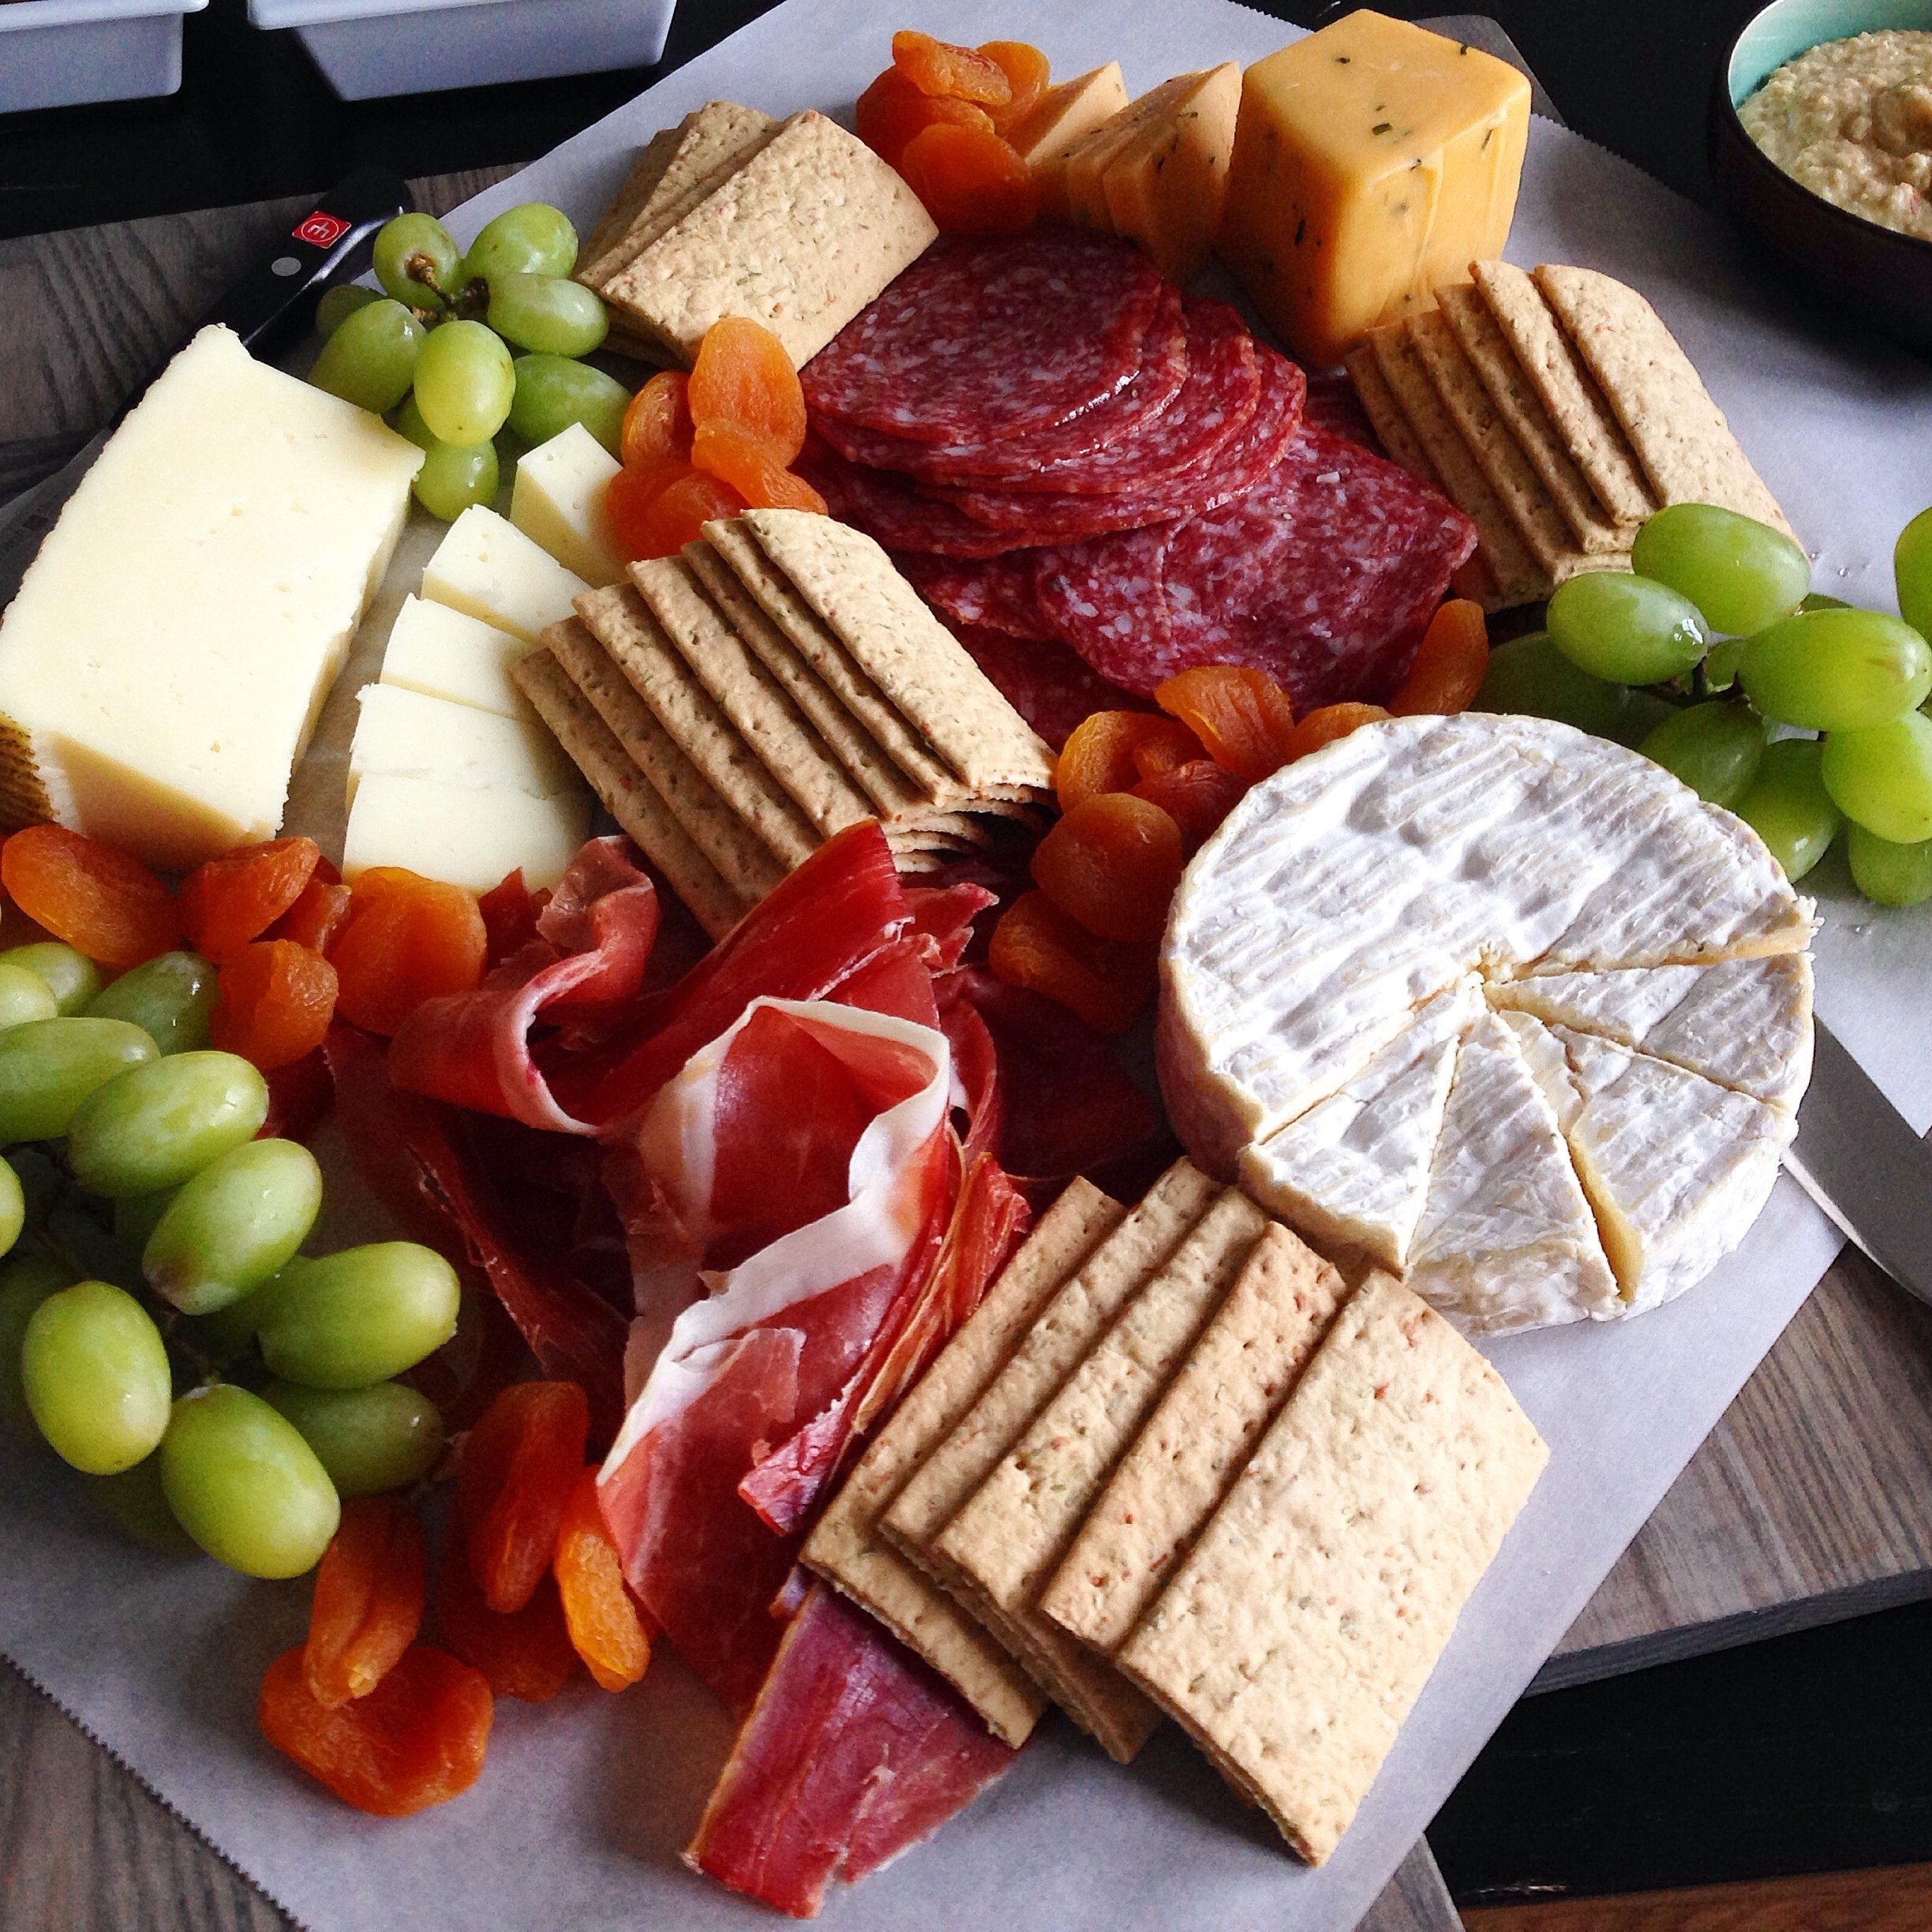 10 Unique Meat And Cheese Platter Ideas easy entertaining charcuterie and cheese board ahu eats 1 2021